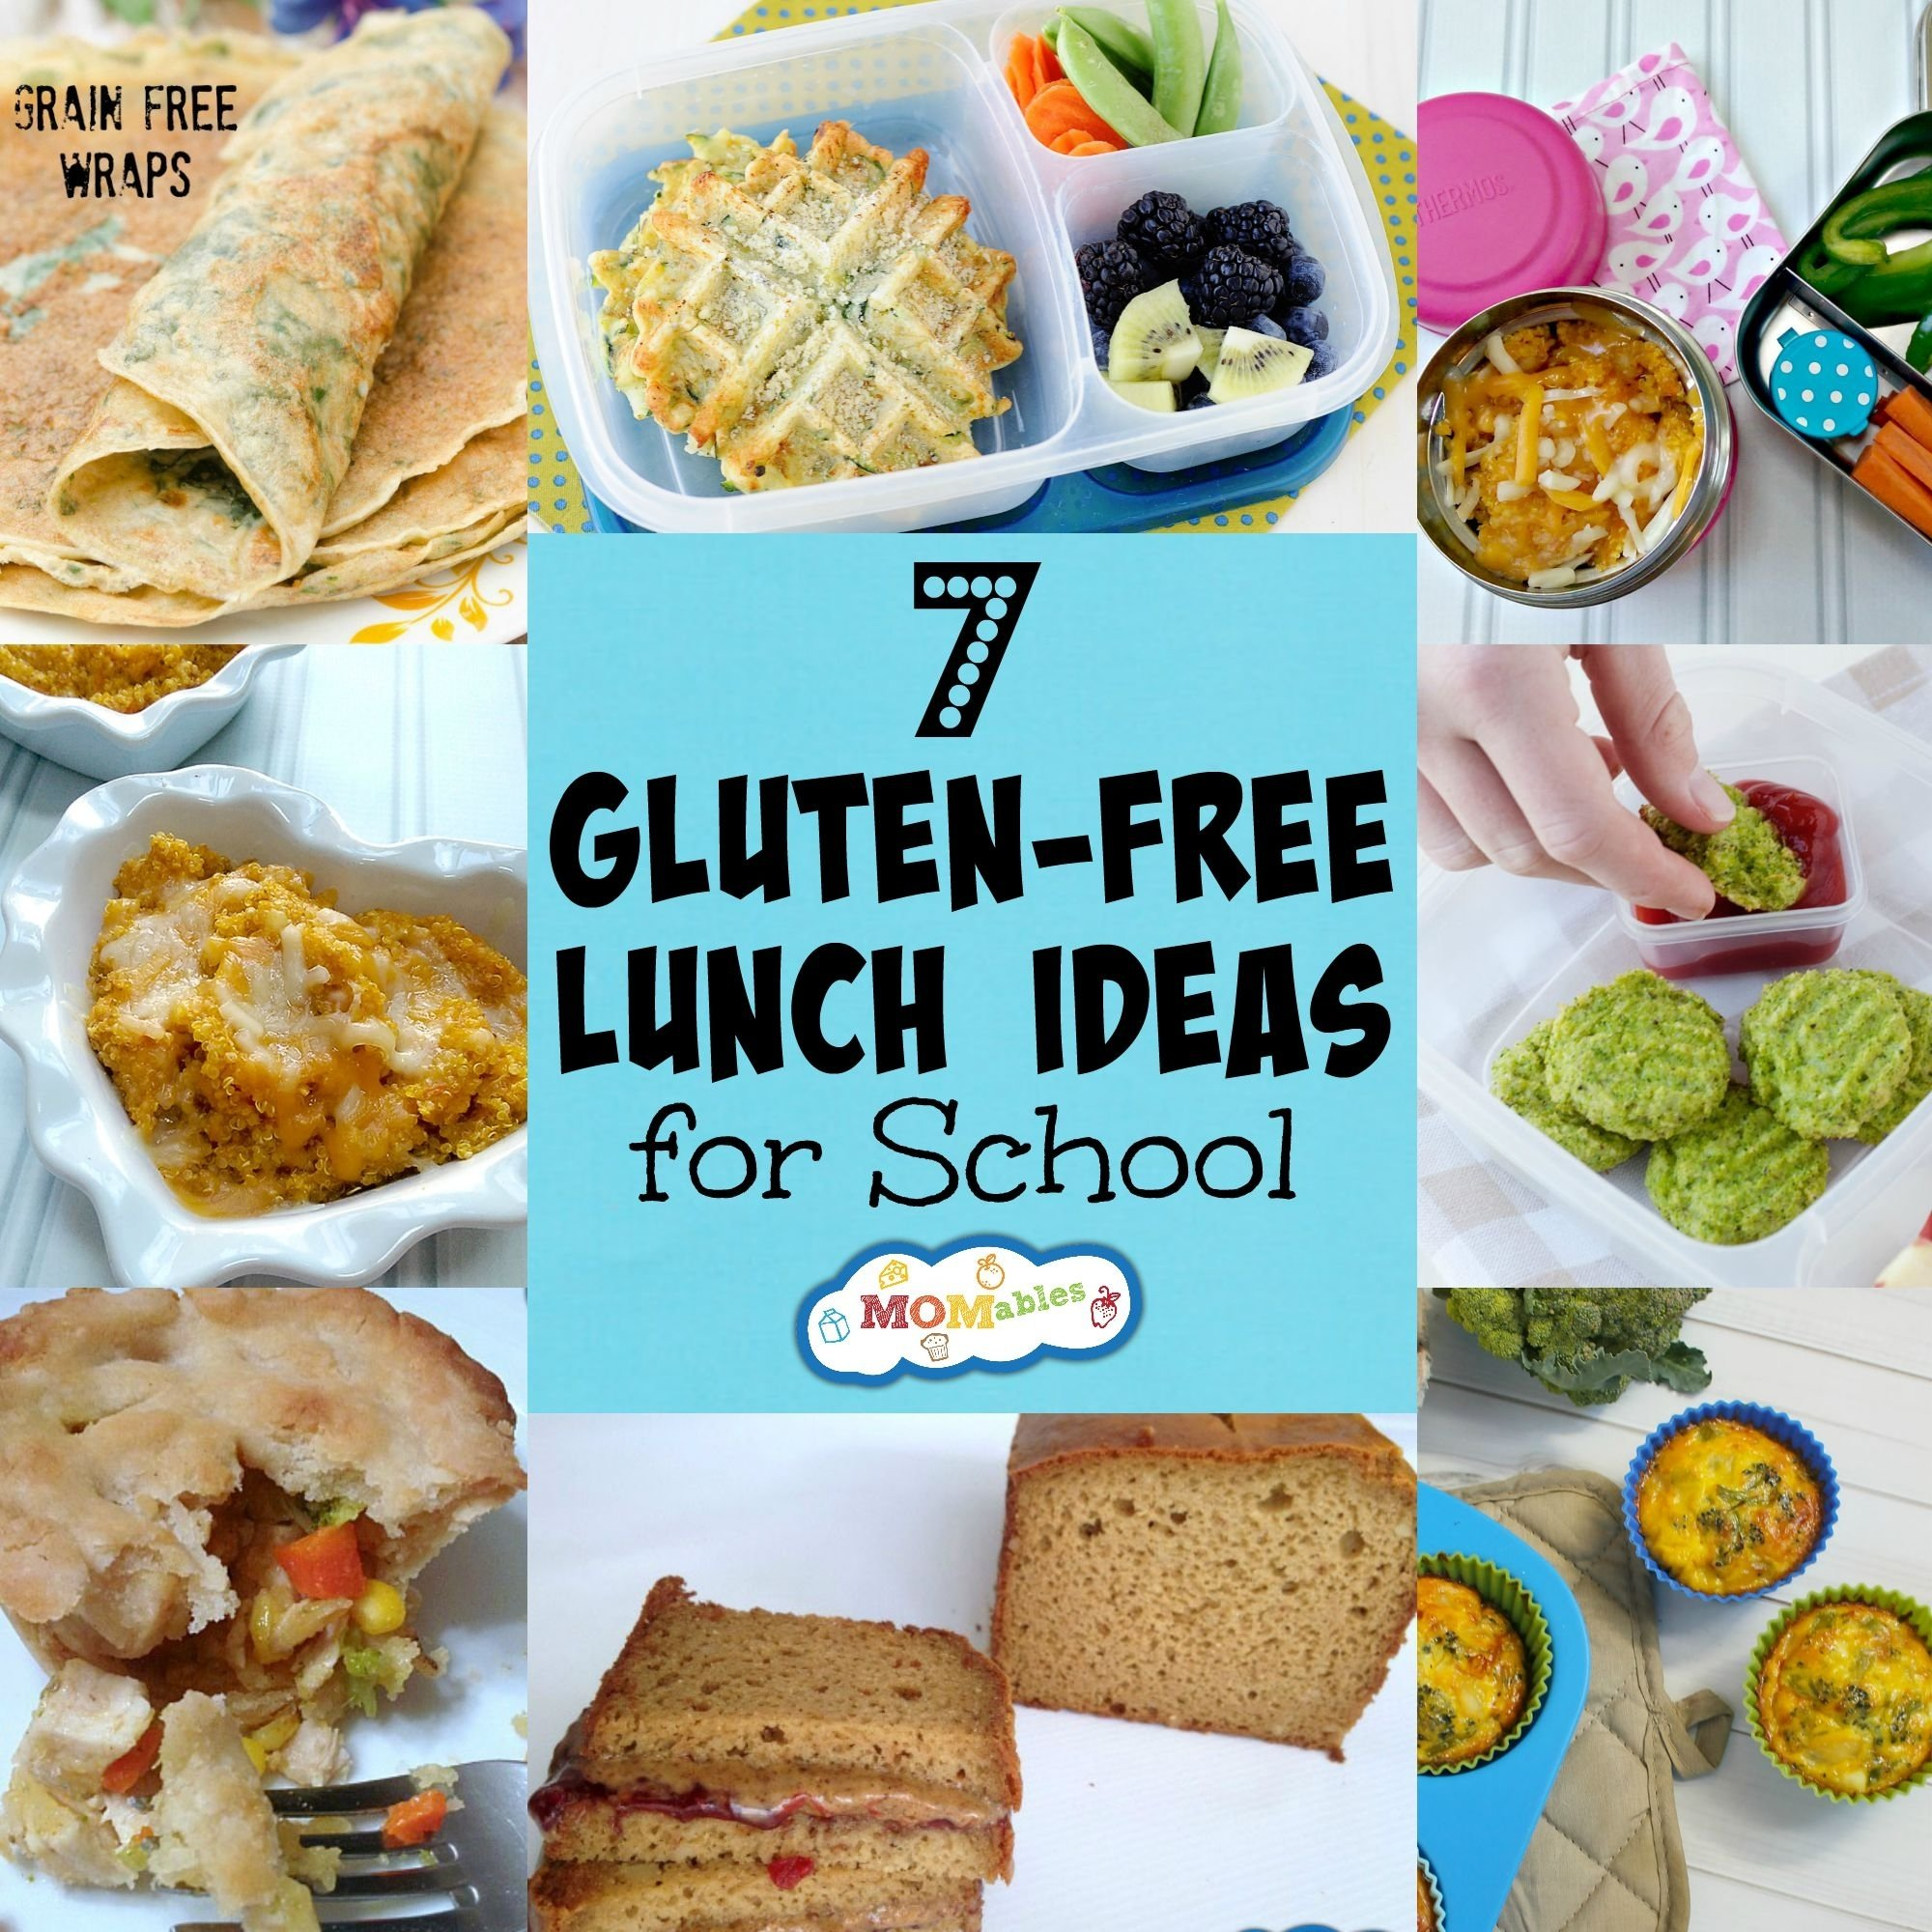 10 Most Popular Lunch Ideas For Kids For School 7 gluten free lunch ideas for school momables 10 2021